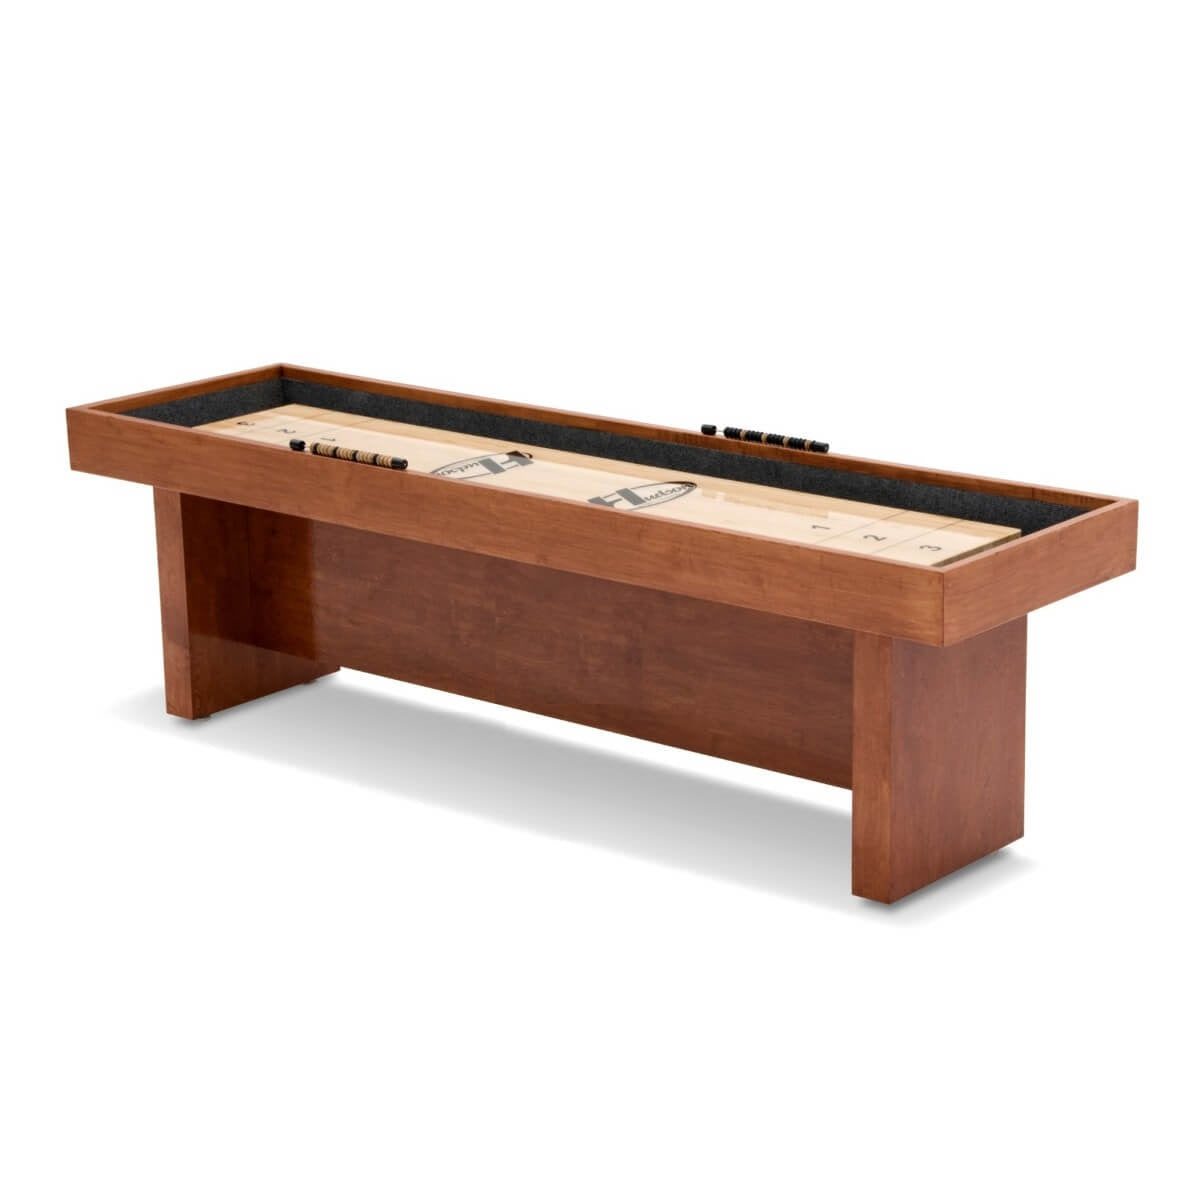 Hudson Berkeley Shuffleboard Table 9'-22' with Custom Stains - Gaming Blaze